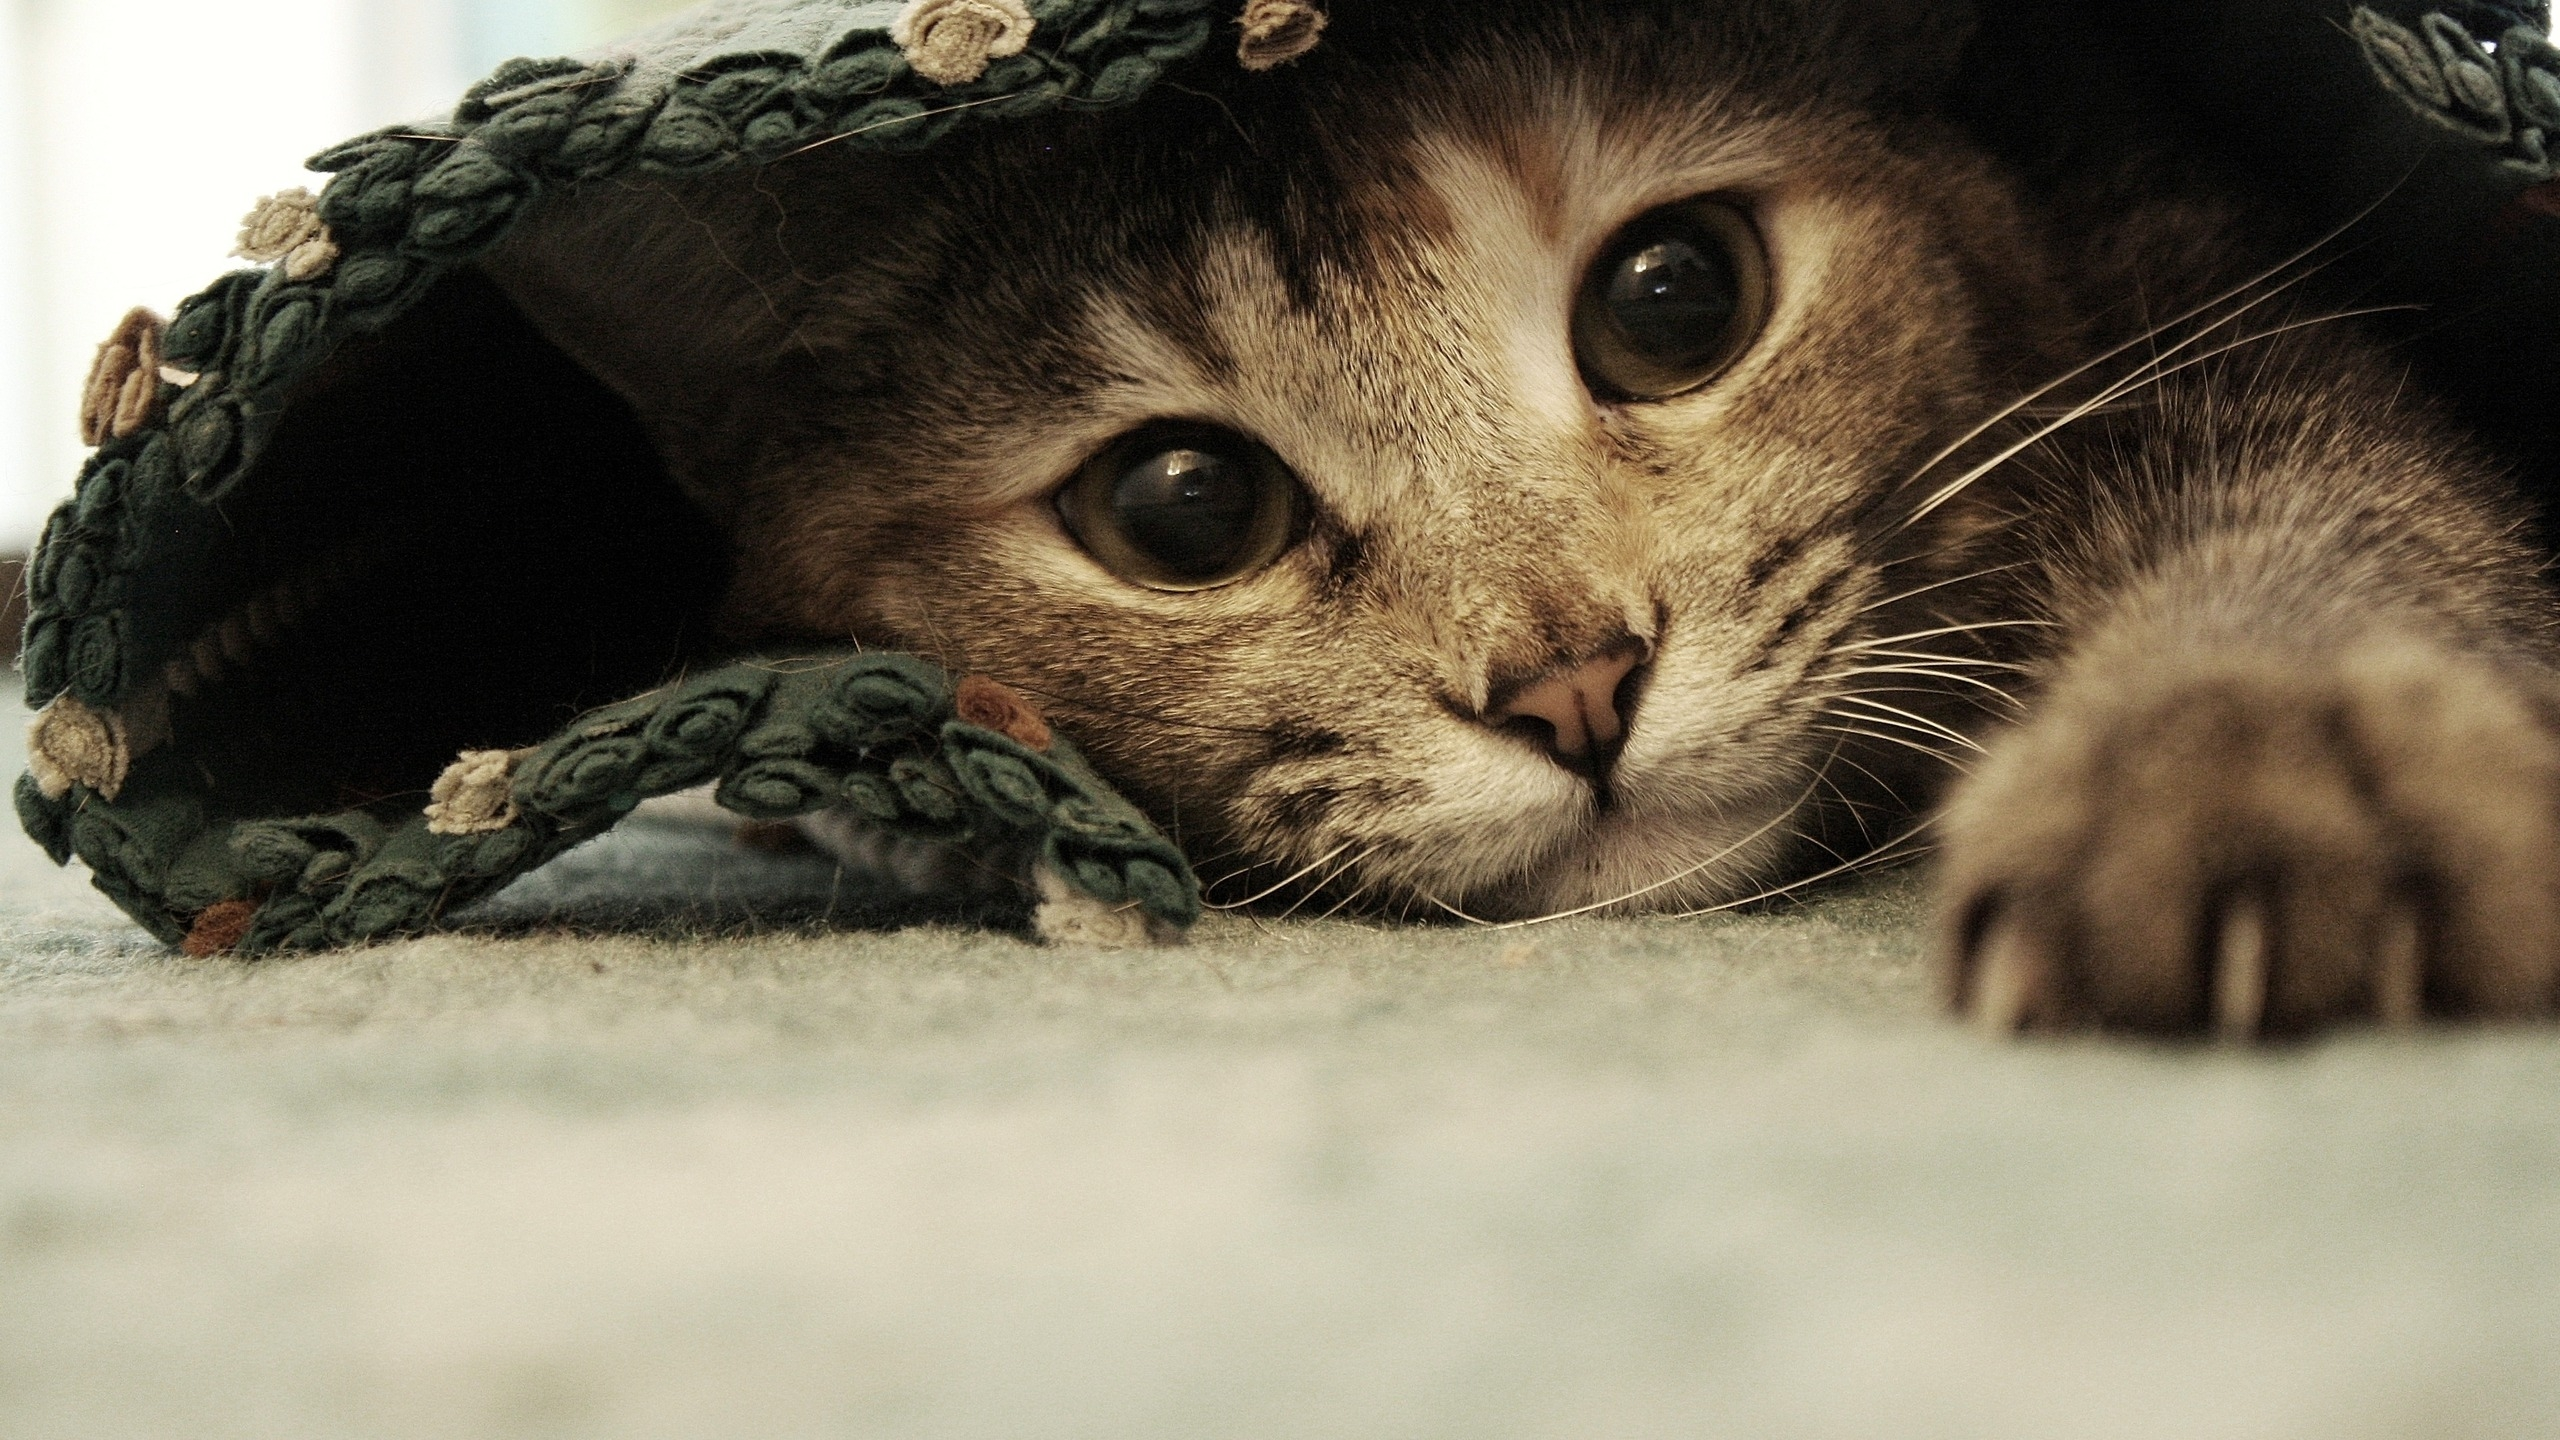 sweet-kitten-2560x1440-wallpaper-4298